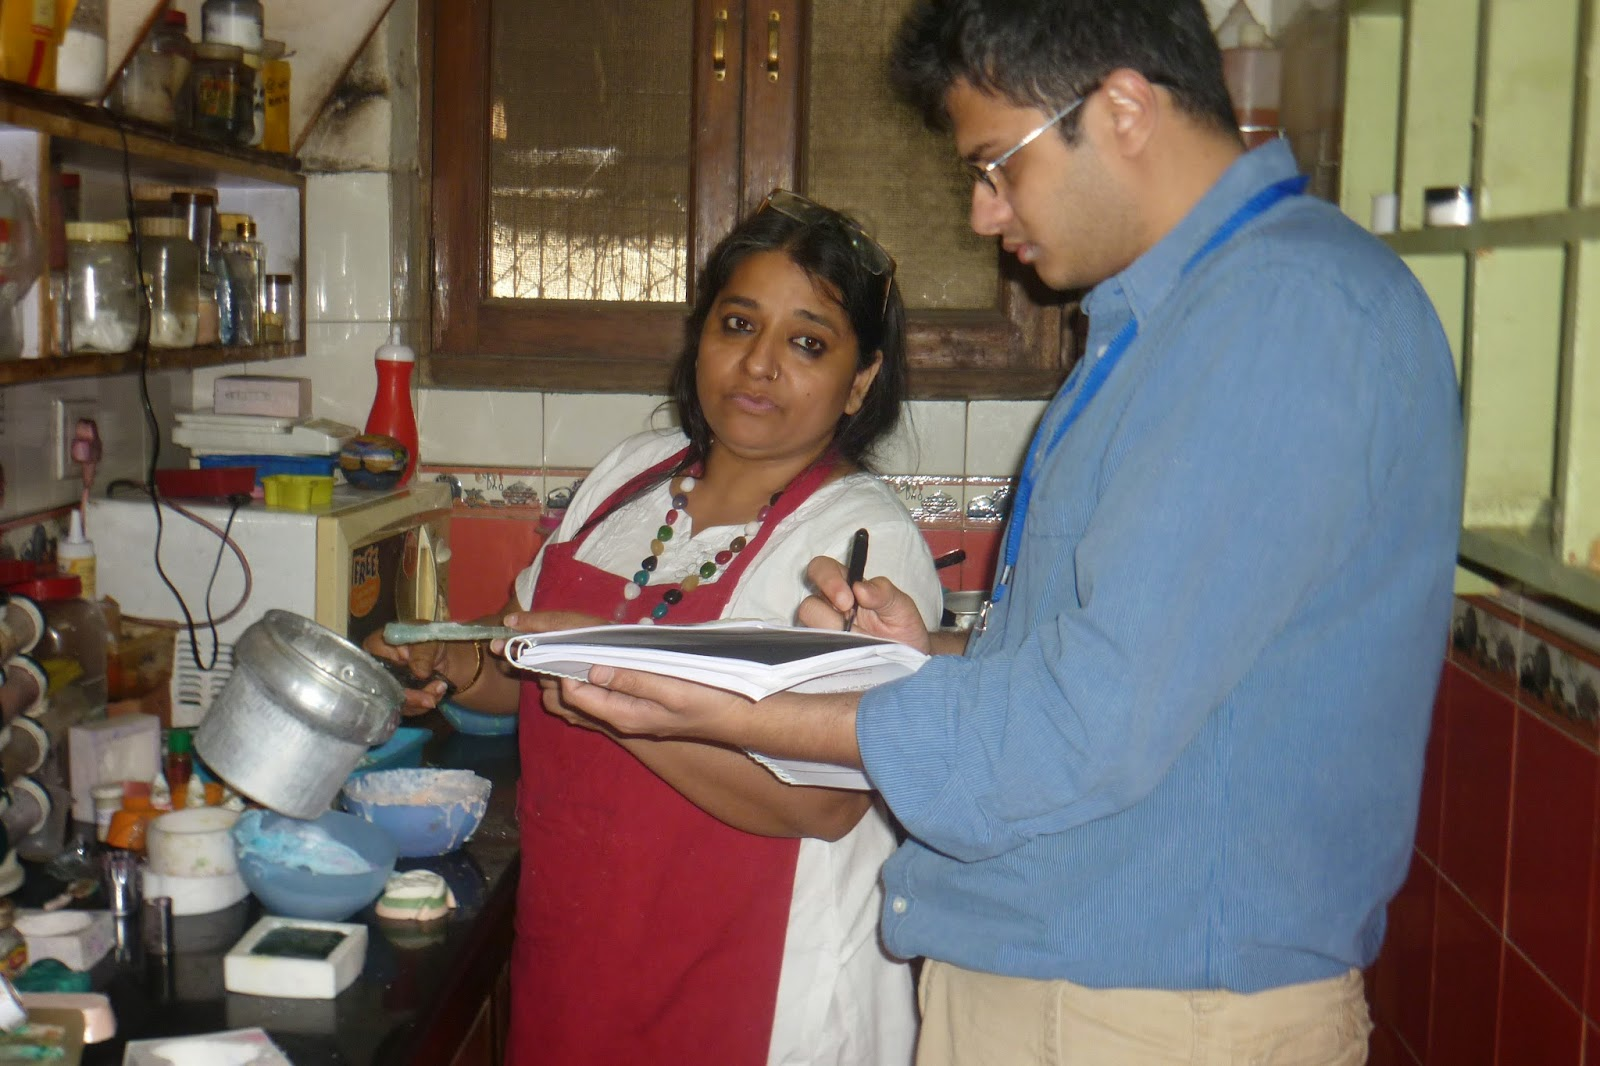 Soap Making Classes In India Soap Making Courses In New Delhi India